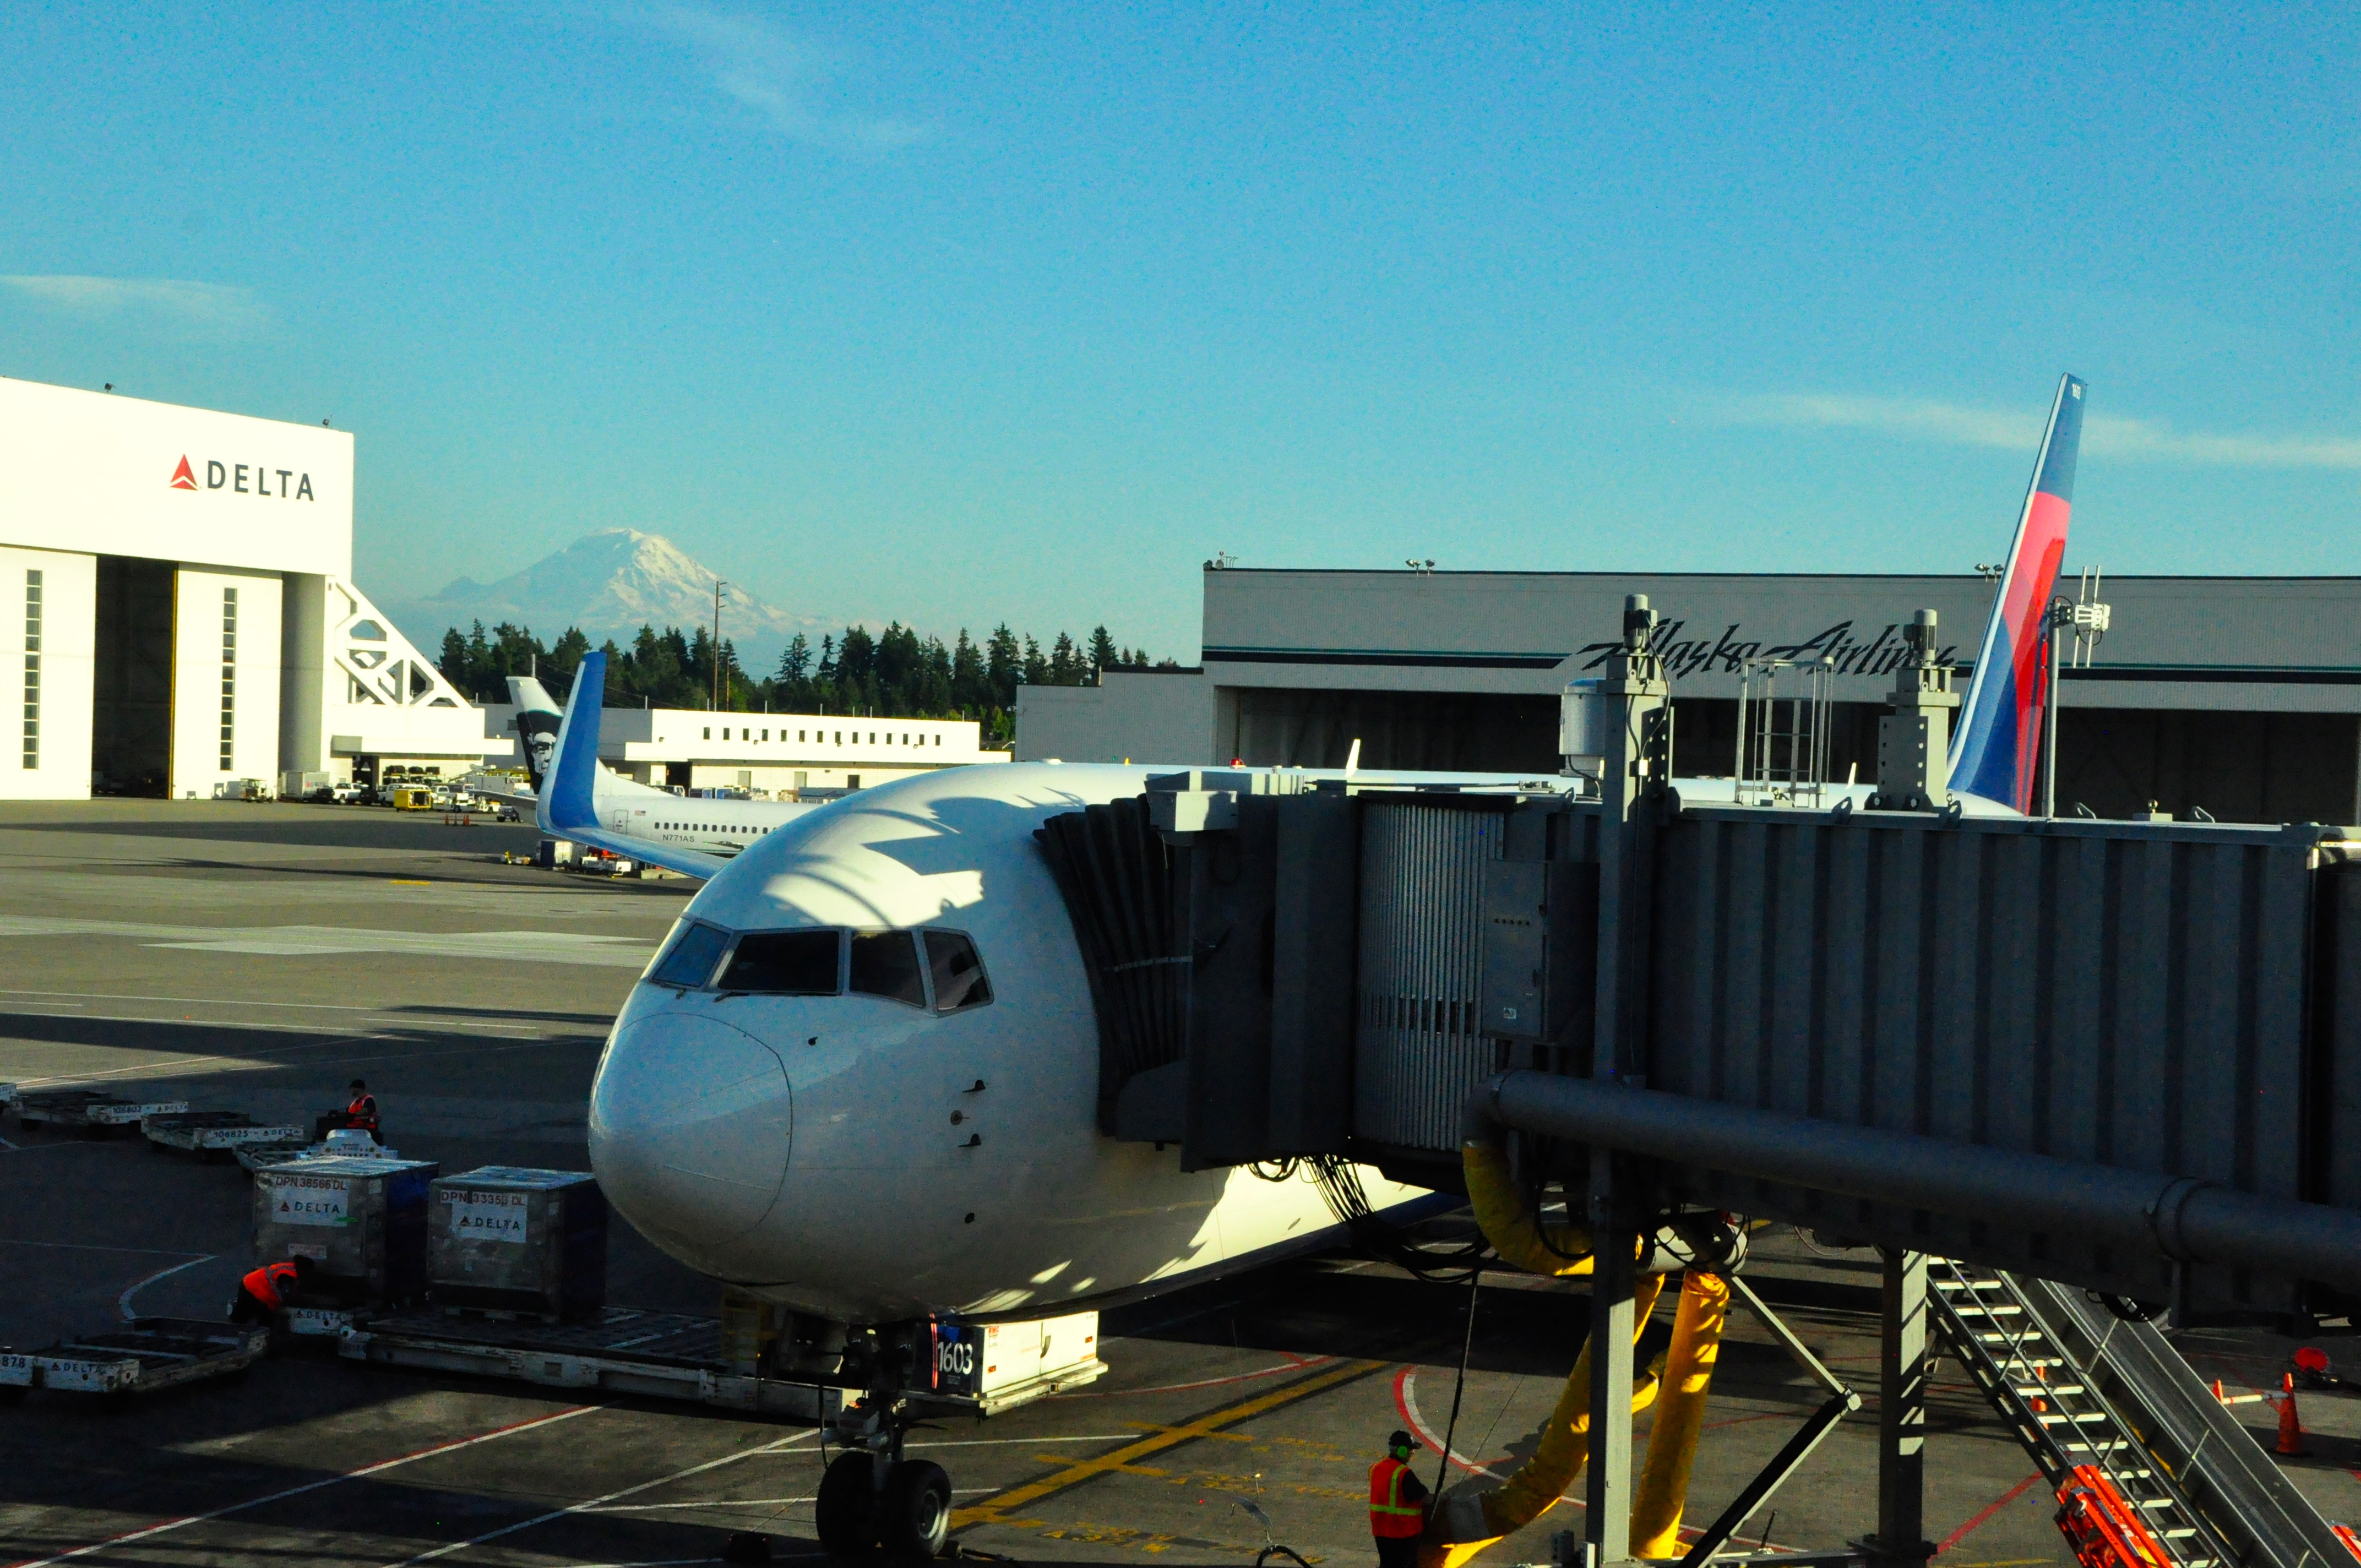 A Delta aircraft at the gate in Seattle